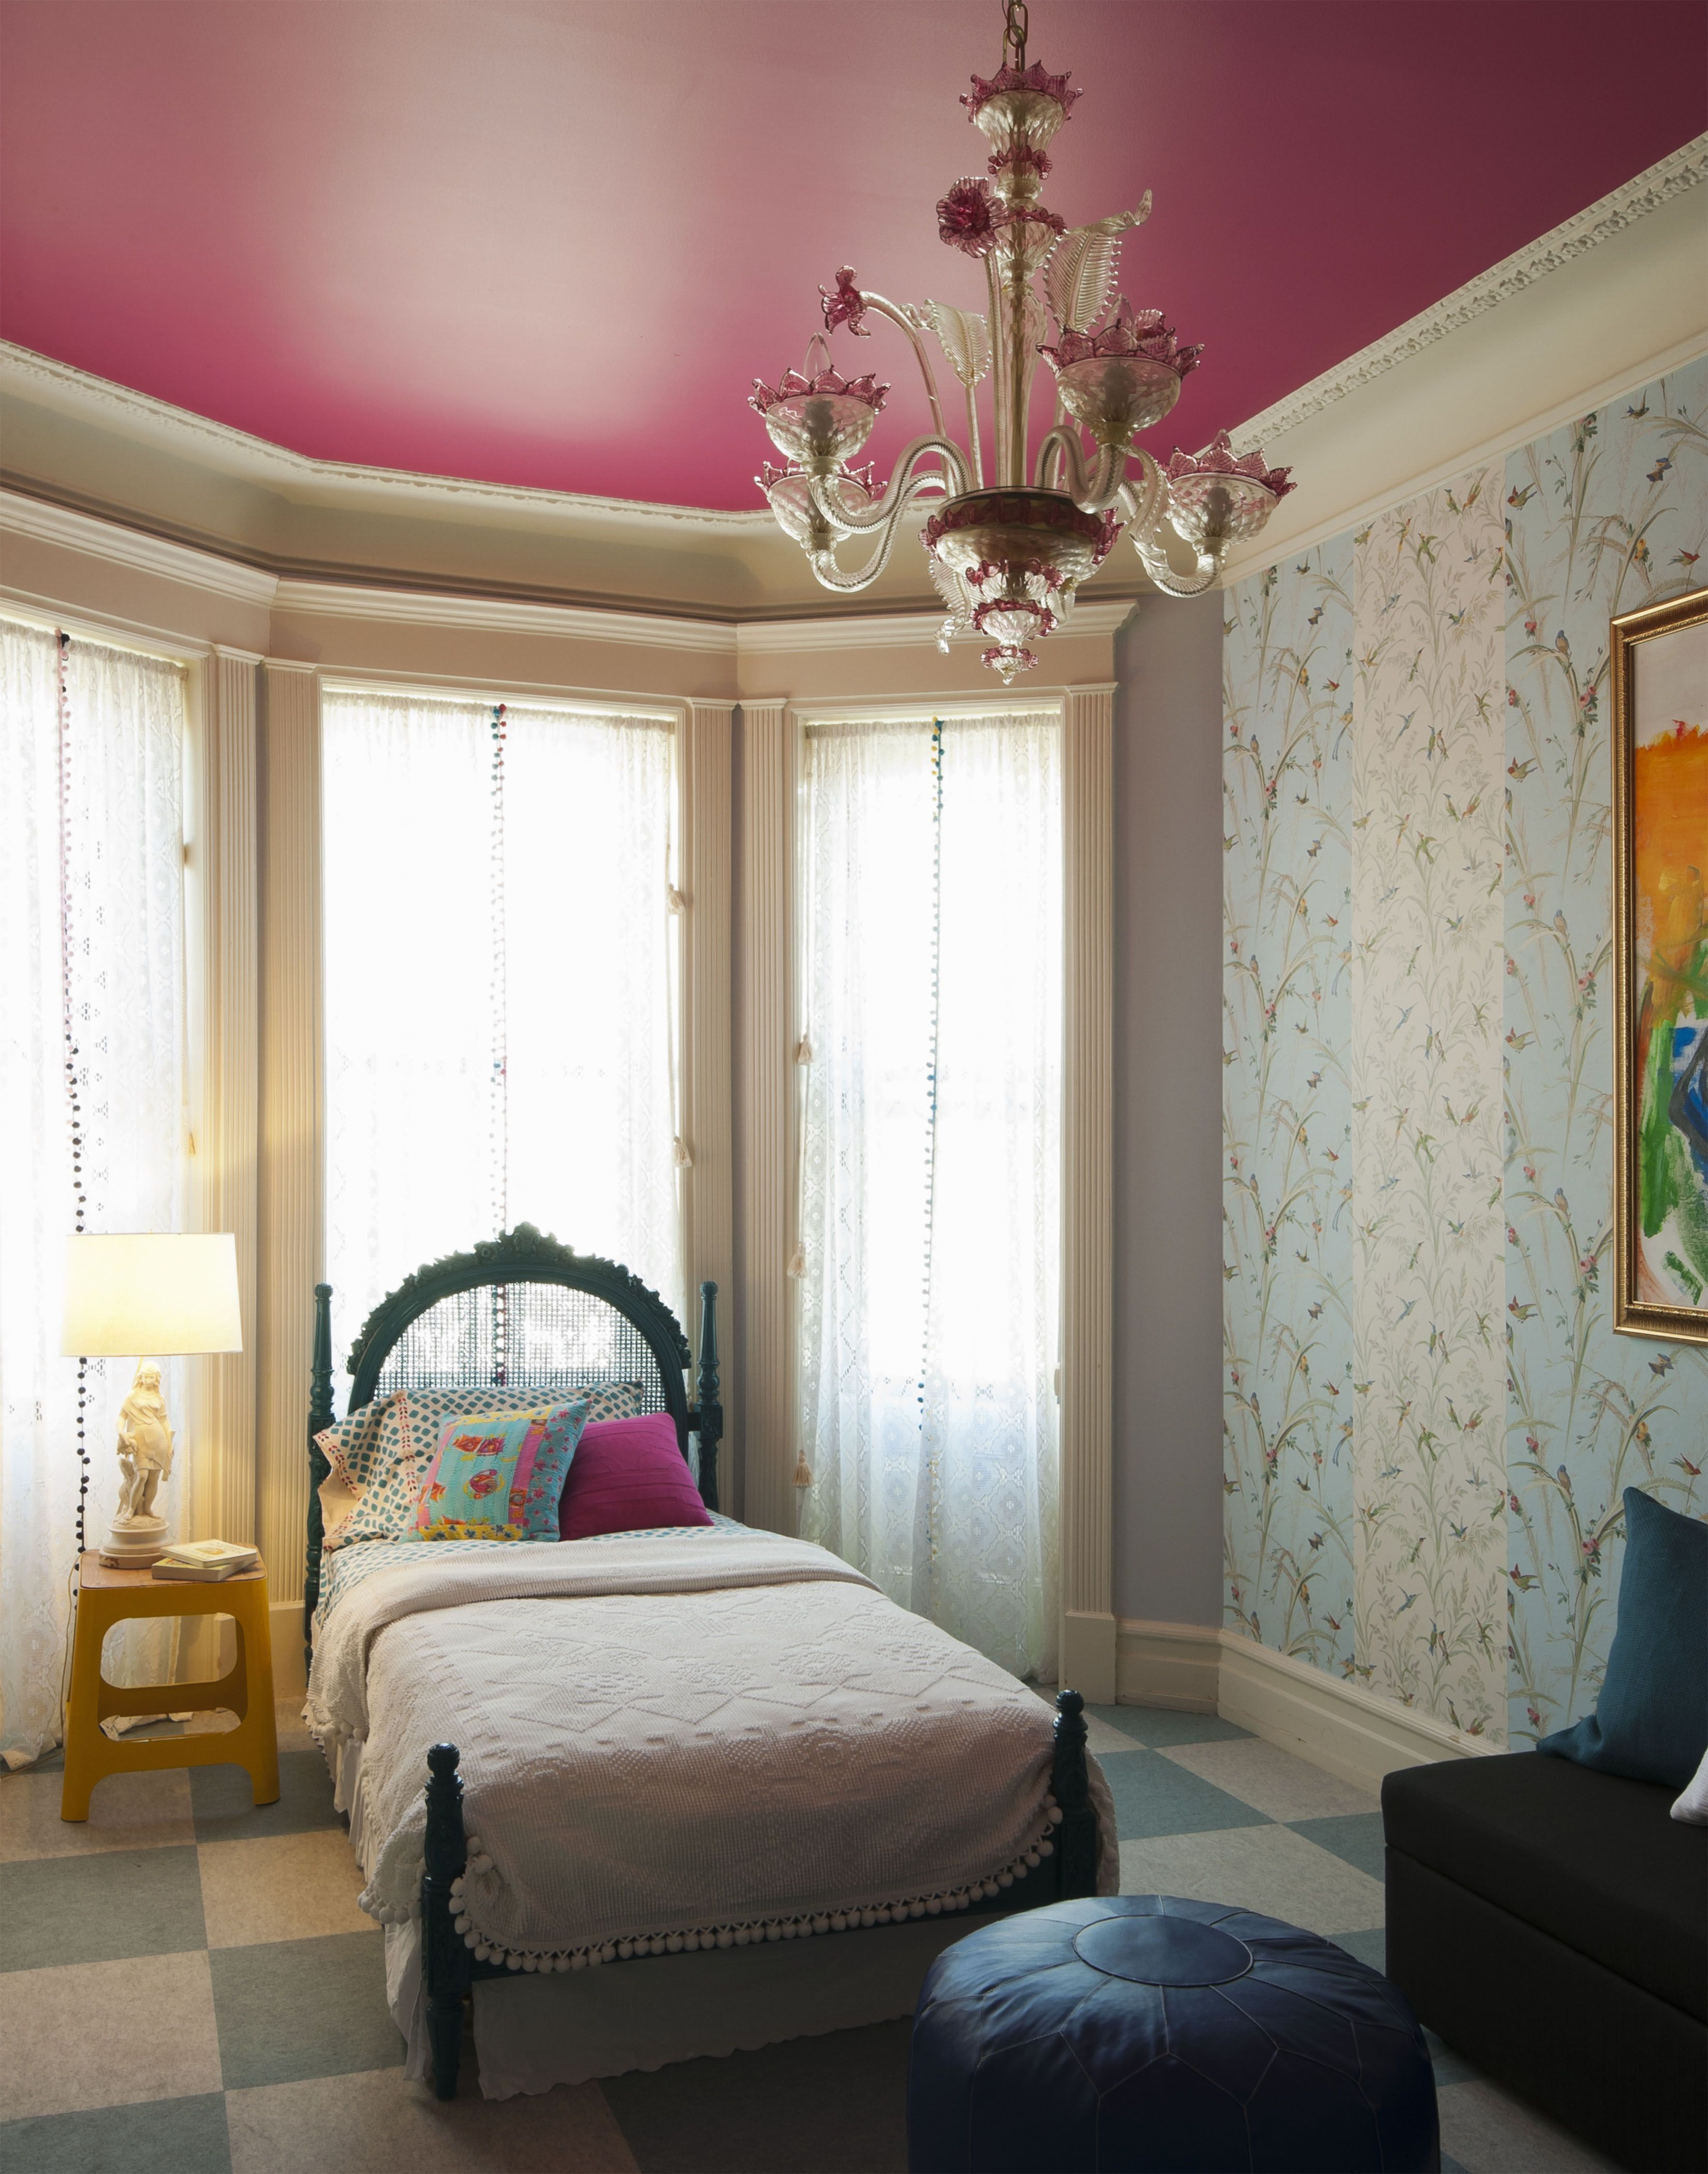 [Ceiling Color] This Stunning Little Girls Room Features A Teal